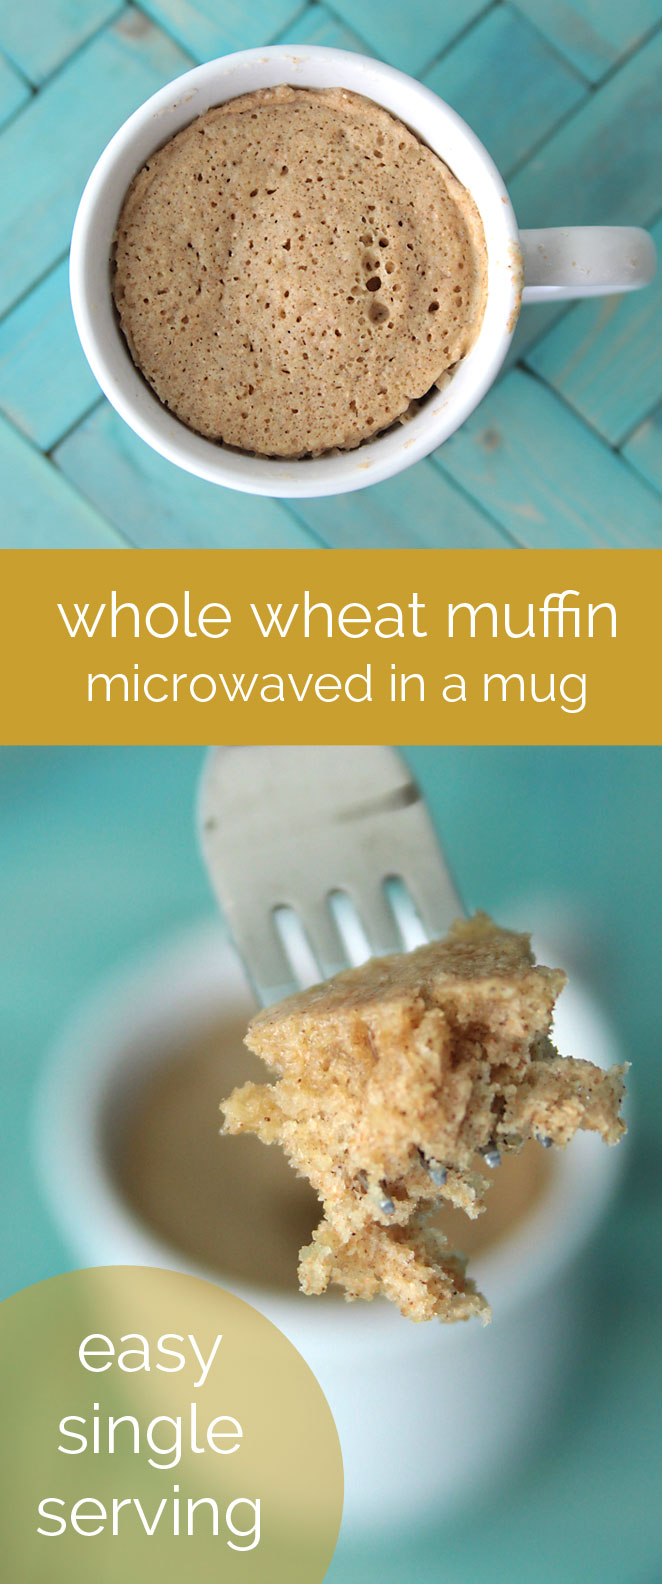 how to make a single serving whole wheat muffin in the microwave - fast, easy & healthy recipe!